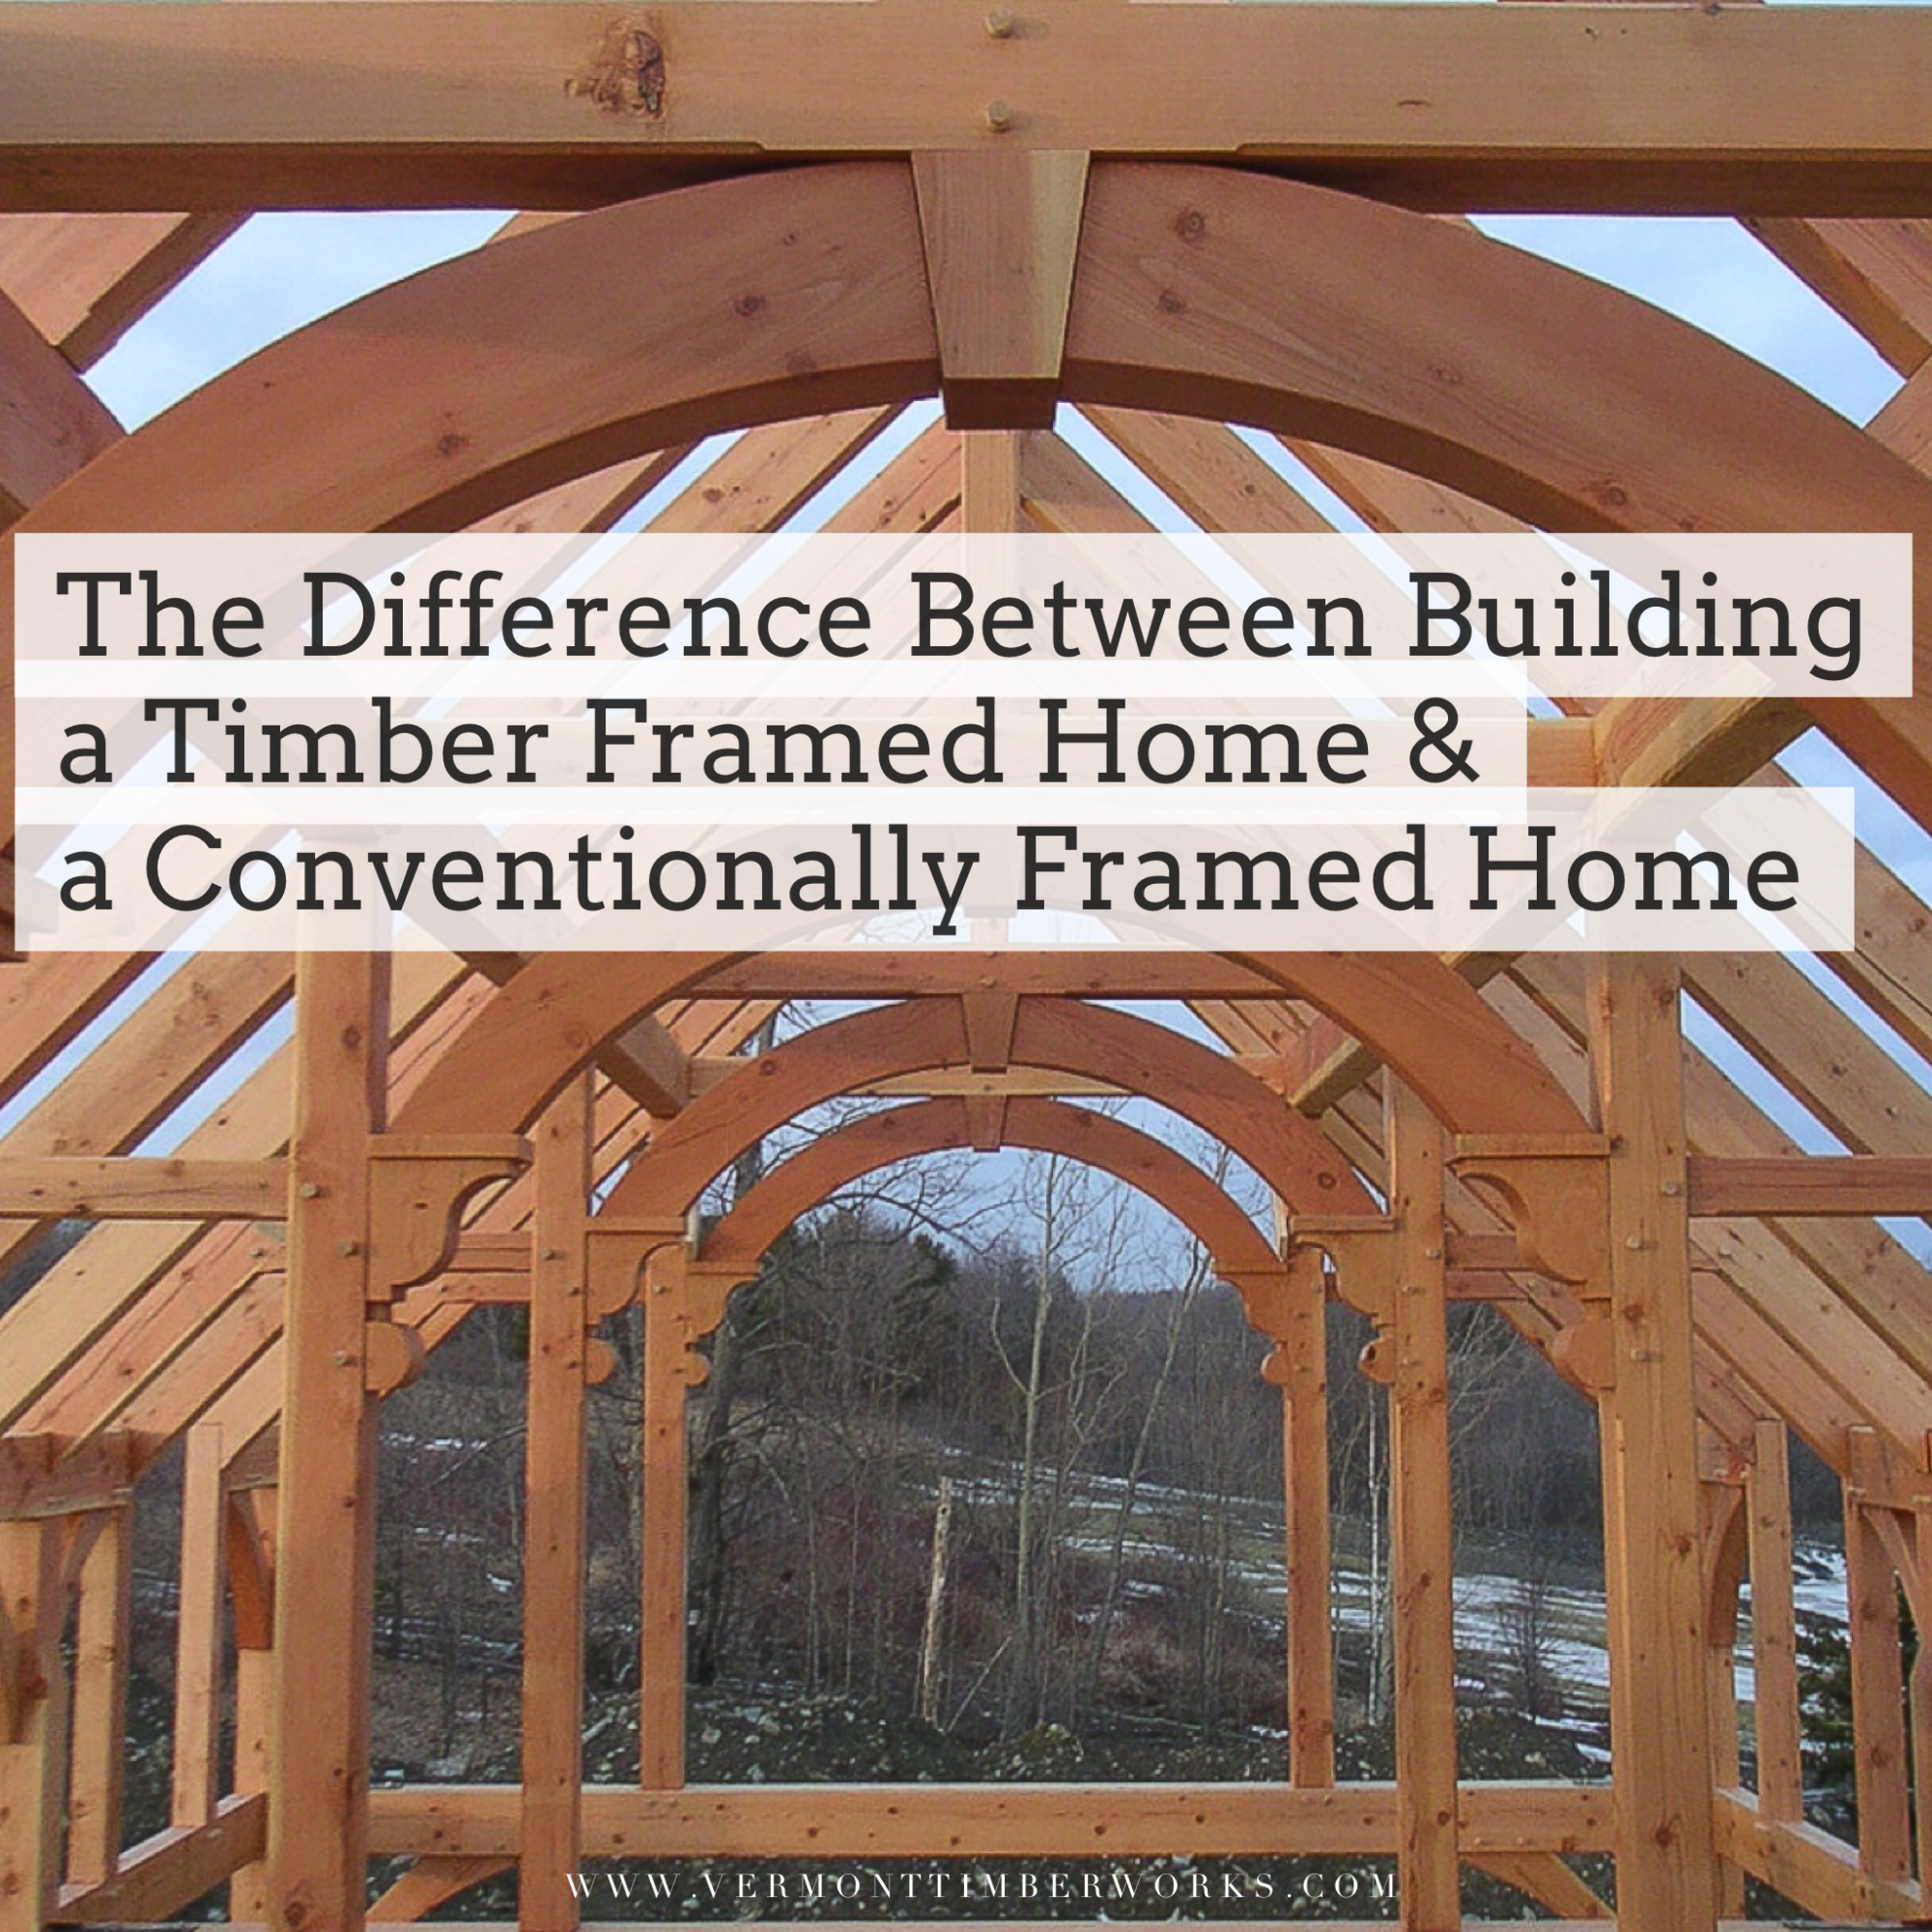 Frame vs Convention Blog – Vermont Timber Works